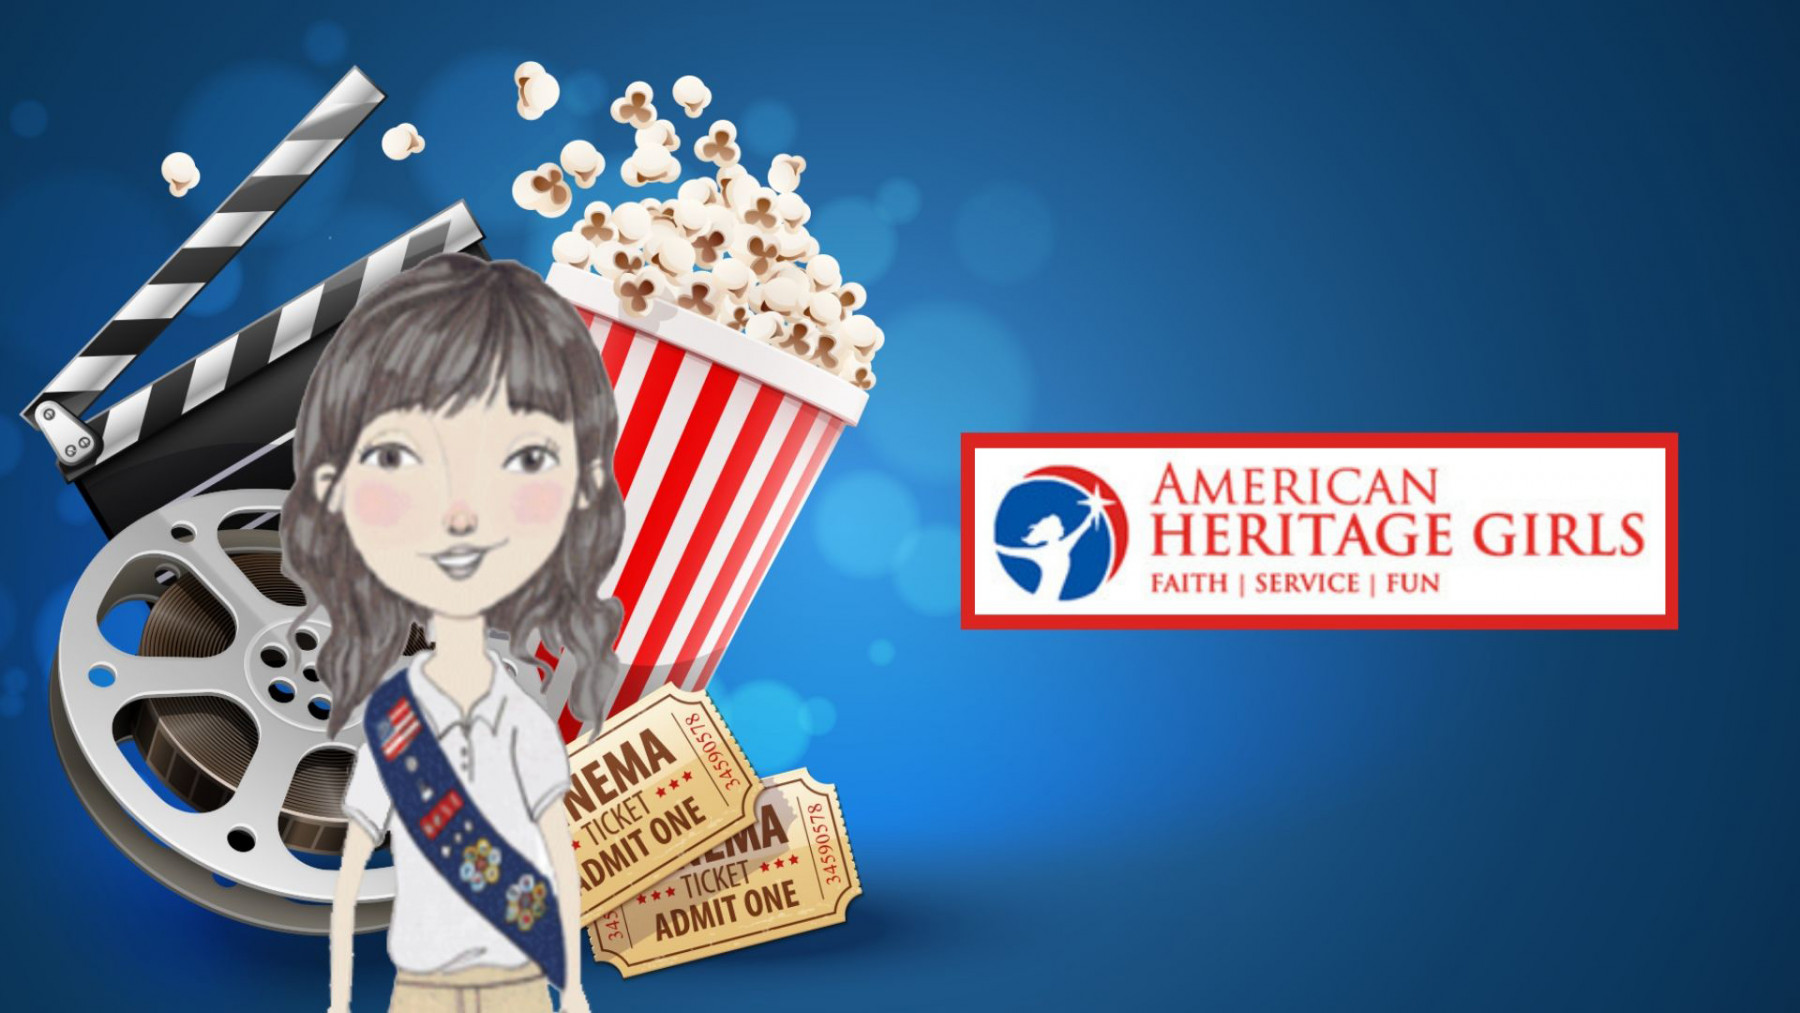 American Heritage Girls Bring a Friend Movie Night